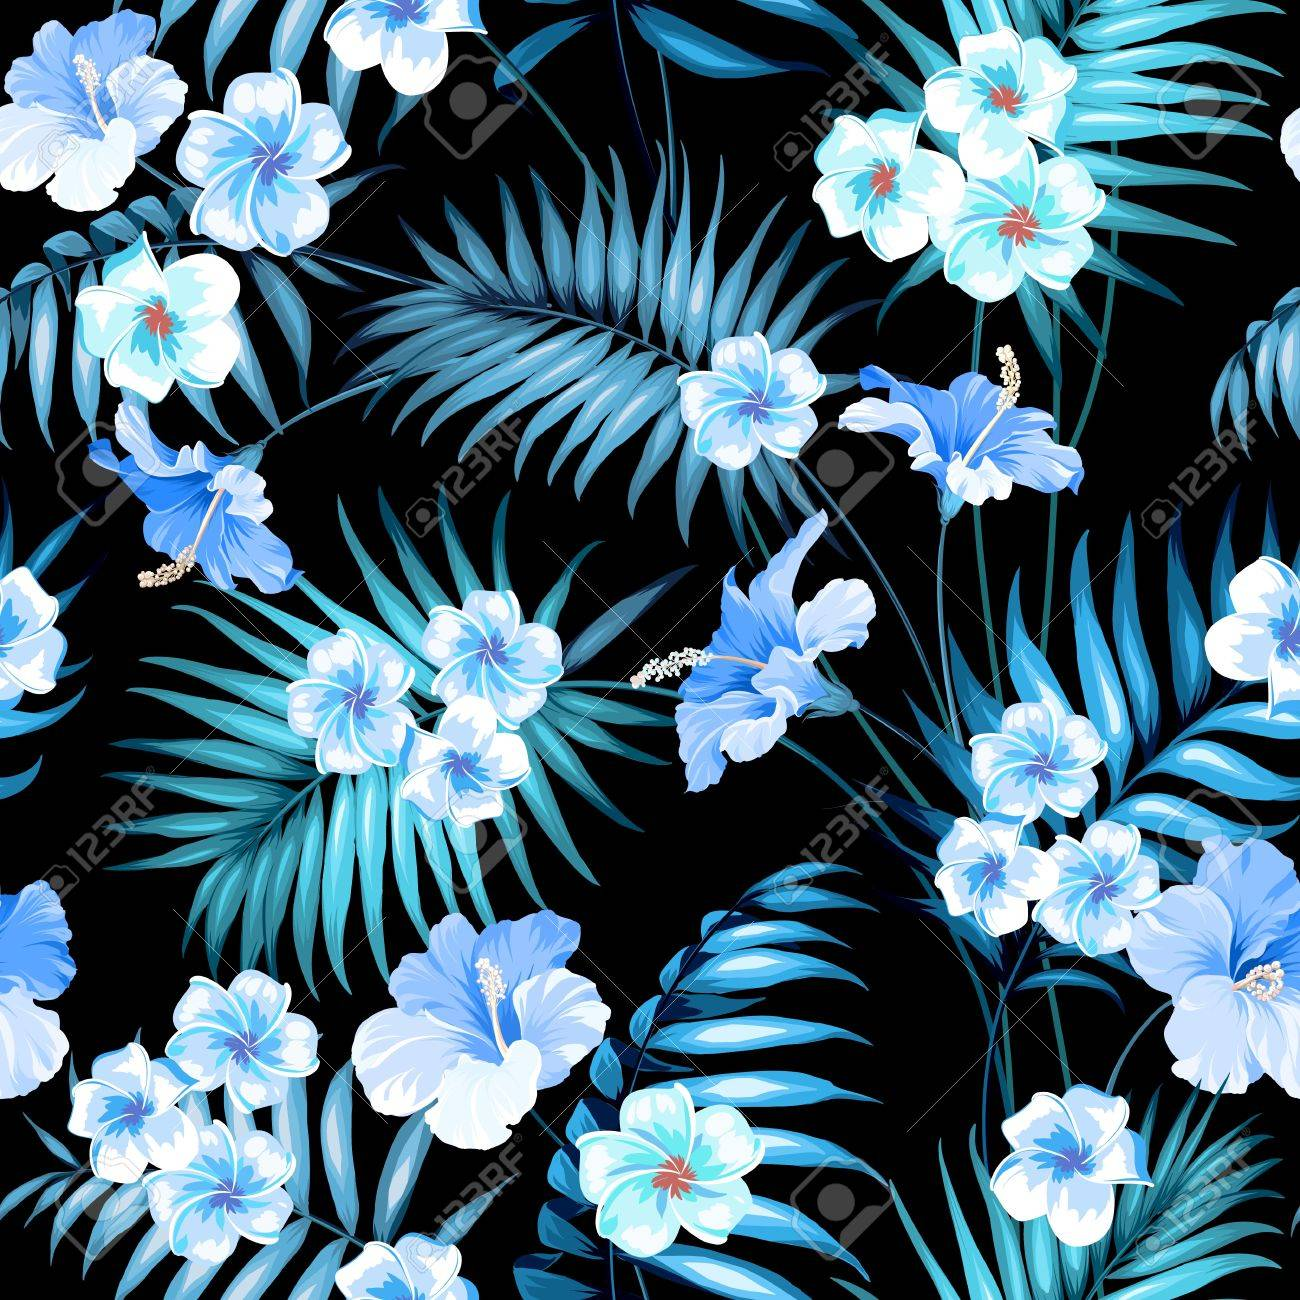 Tropical Plumeria And Jungle Palms Beautiful Fabric Pattern Royalty Free Cliparts Vectors And Stock Illustration Image 67735788